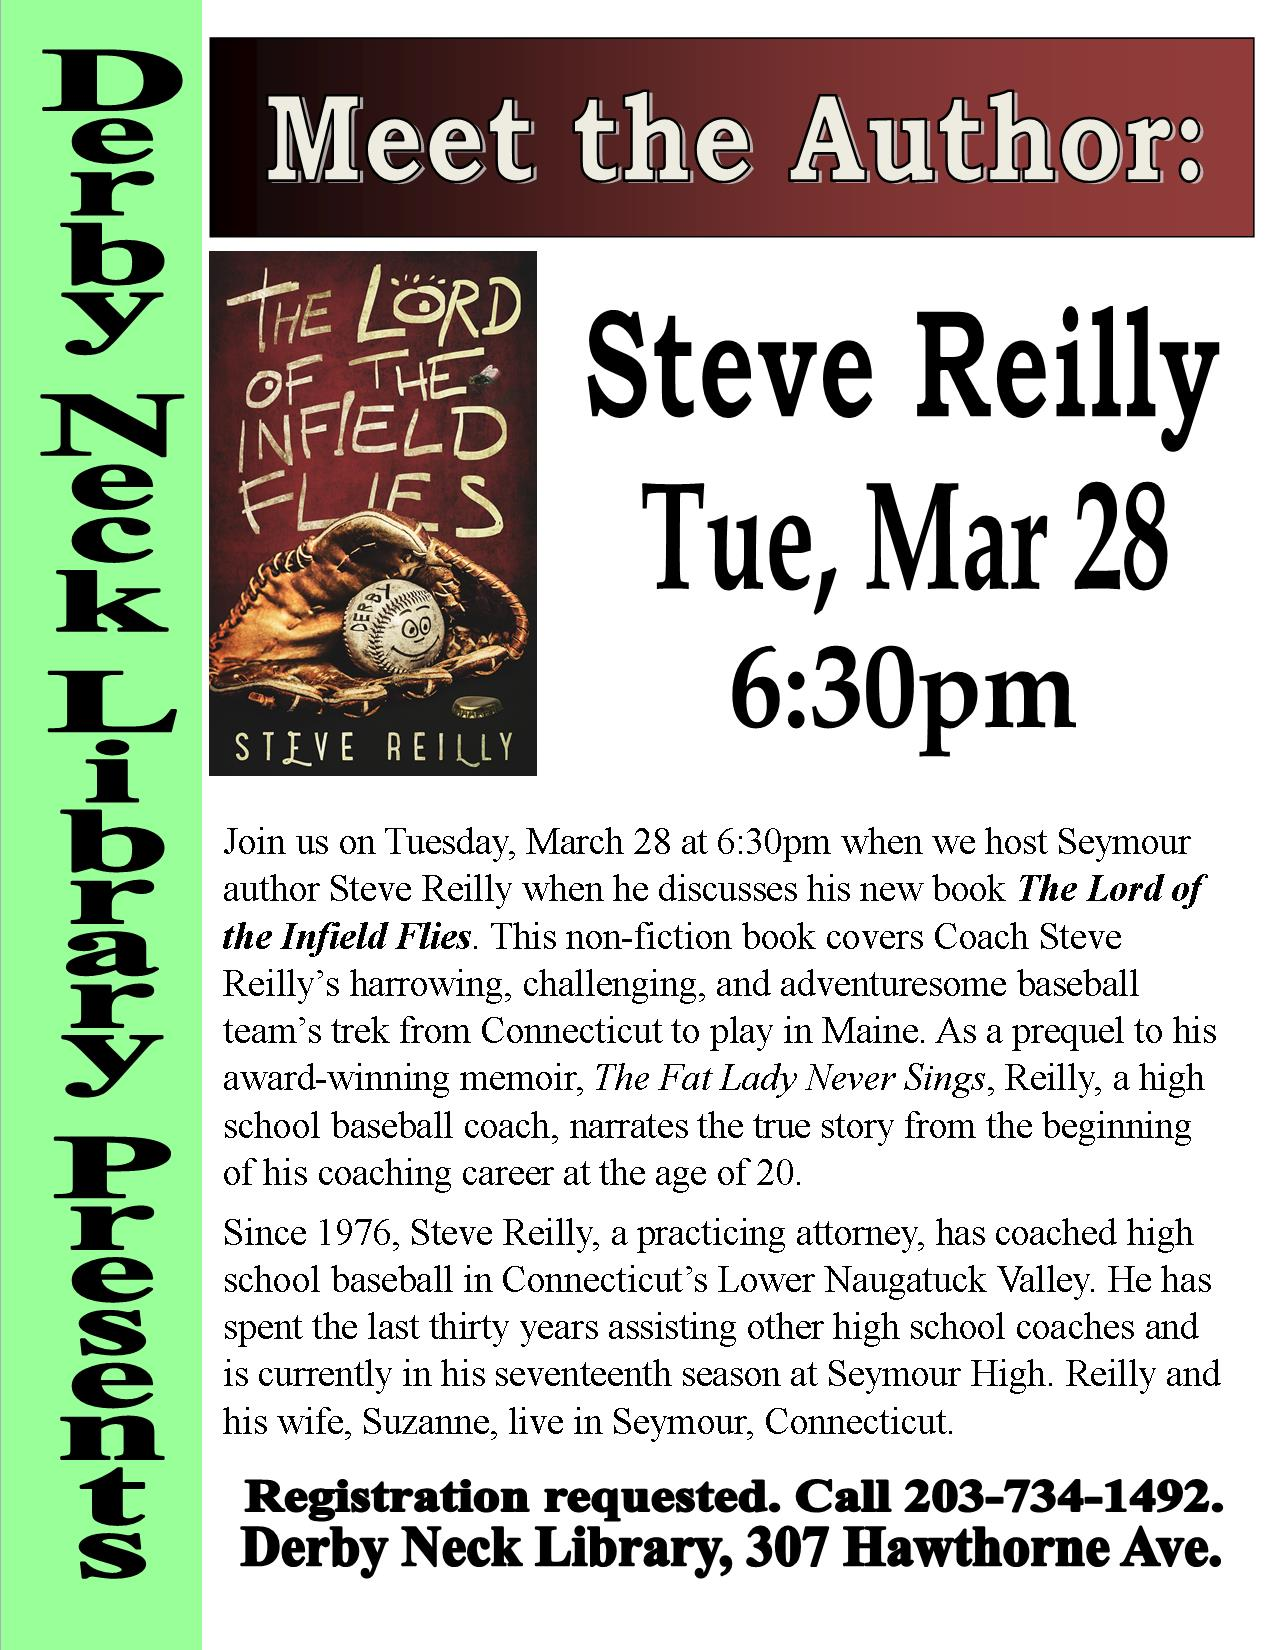 Meet the Author - Steve Reilly: The Lord of the Infield Flies